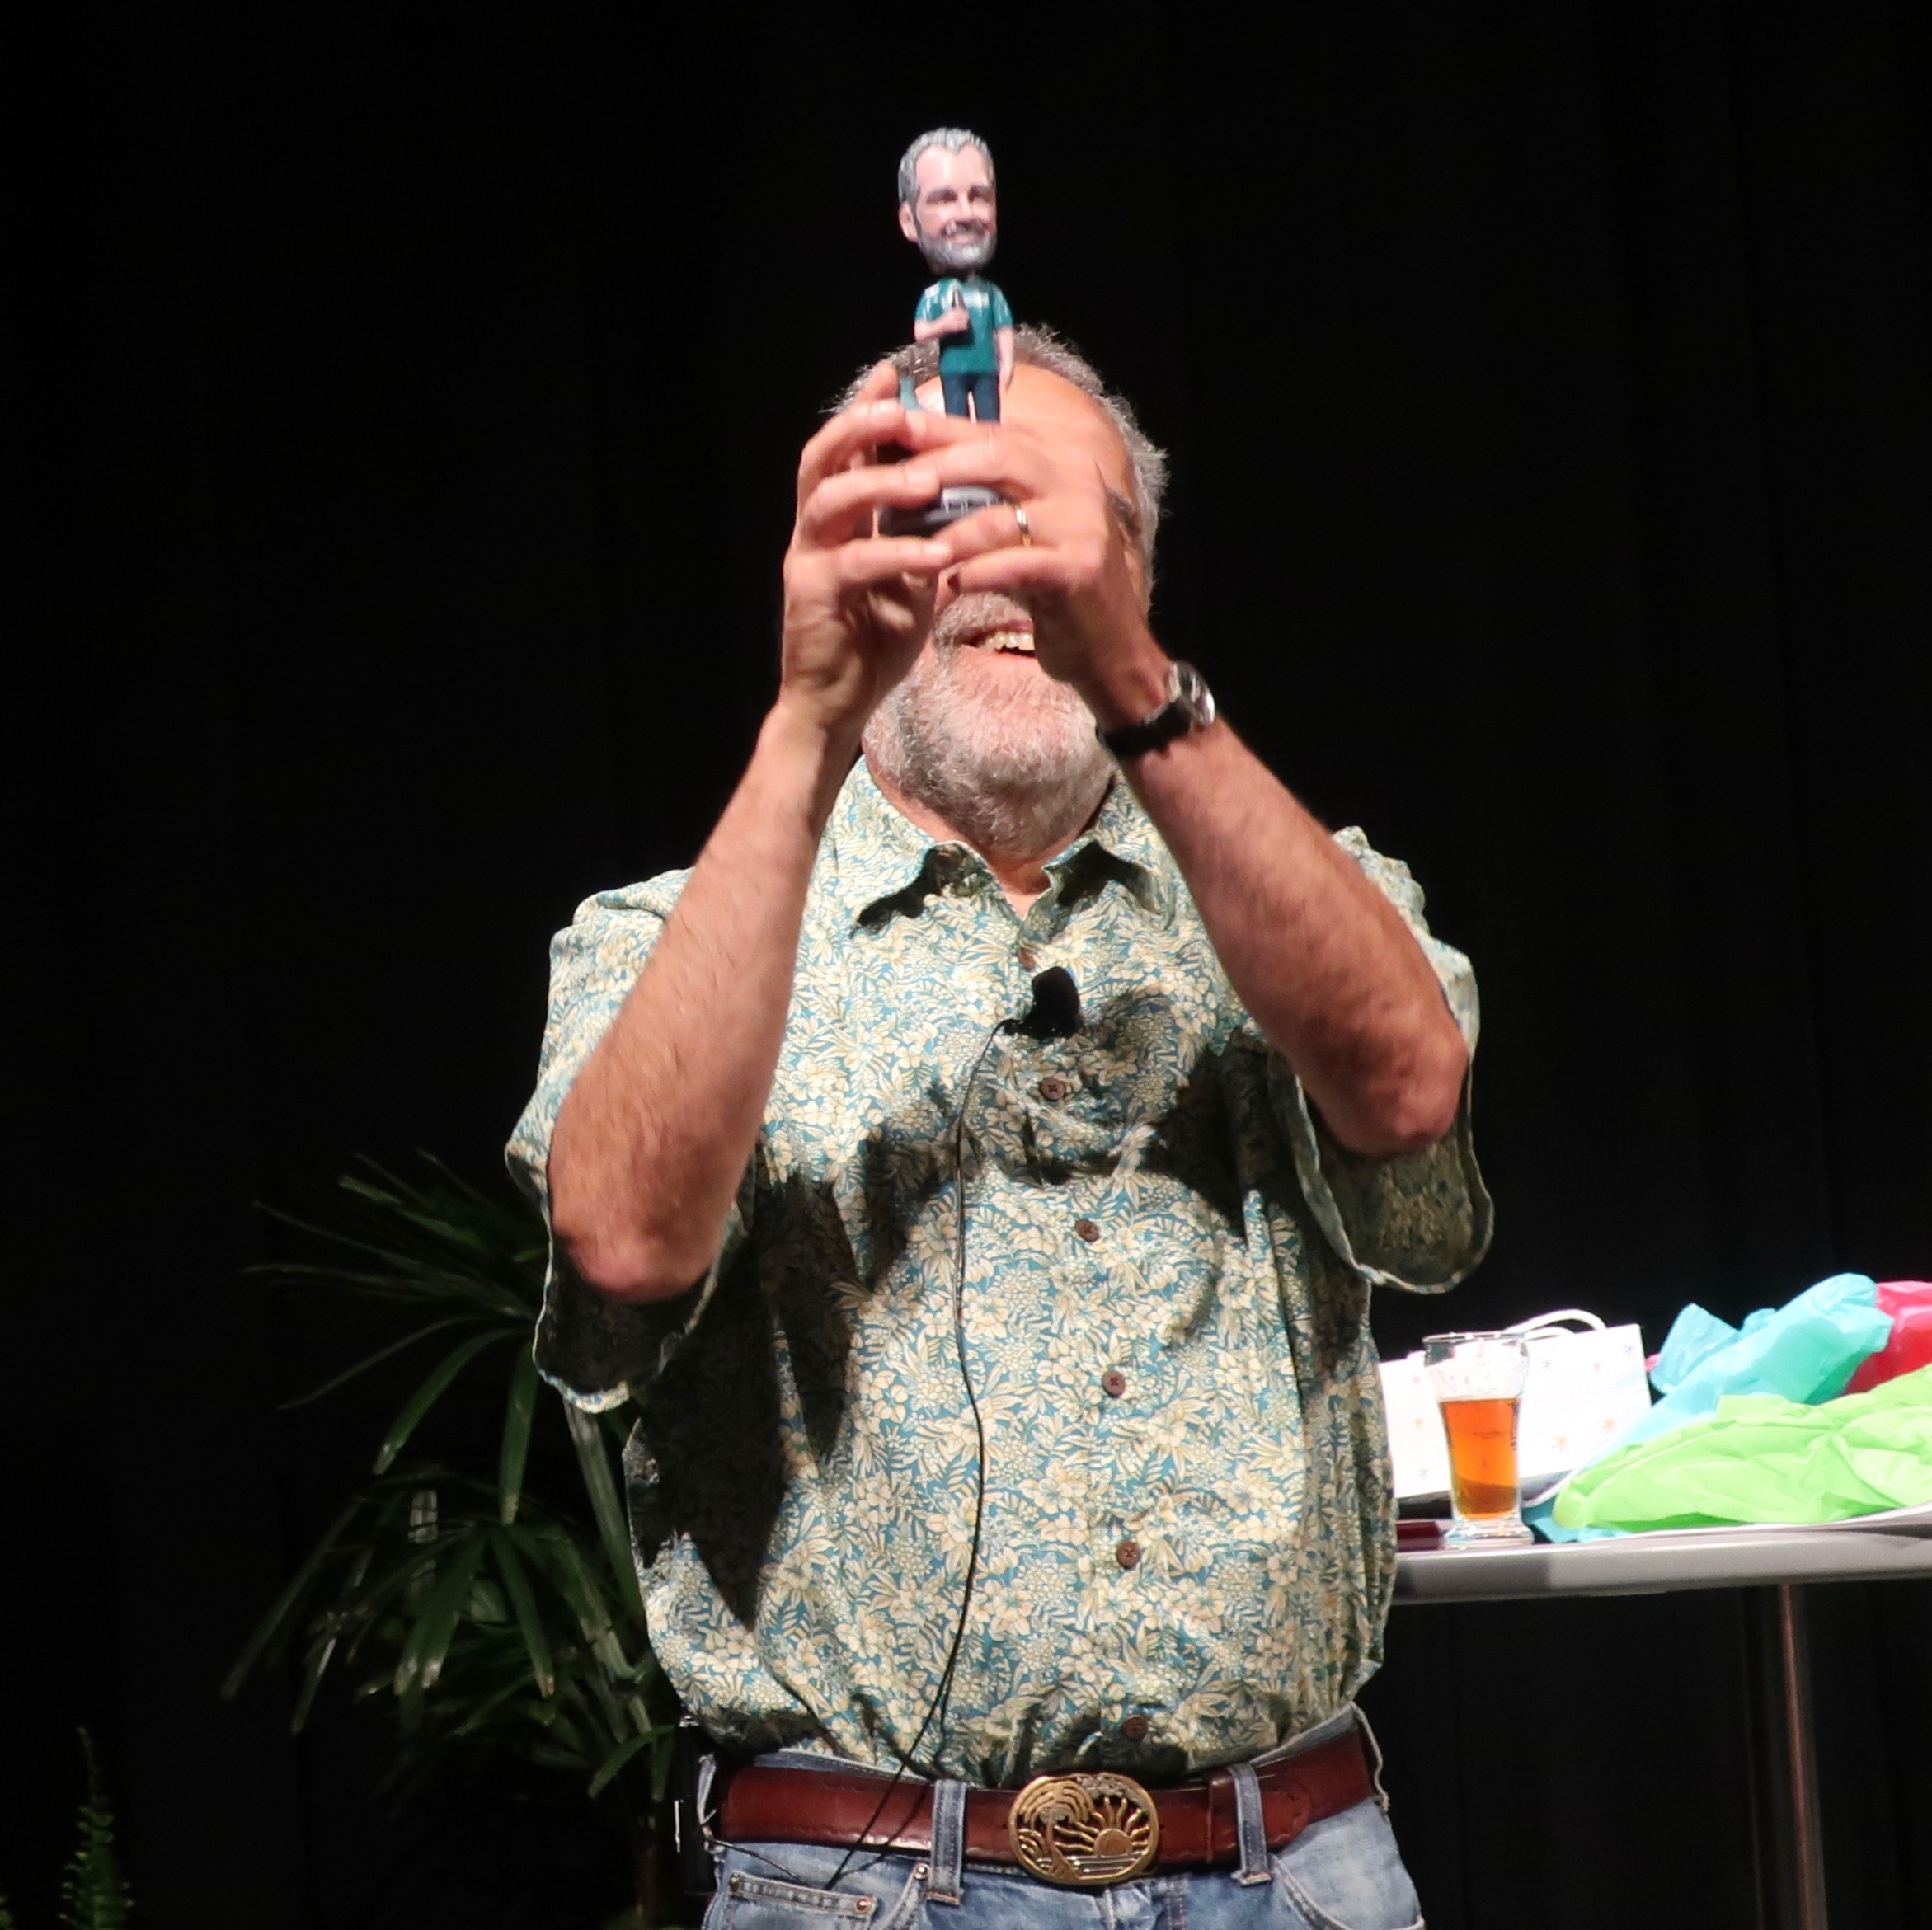 Charlie Papazian holds up his bobblehead that he received as a partying gift during the Keynote Address at Homebrew Con 2018.